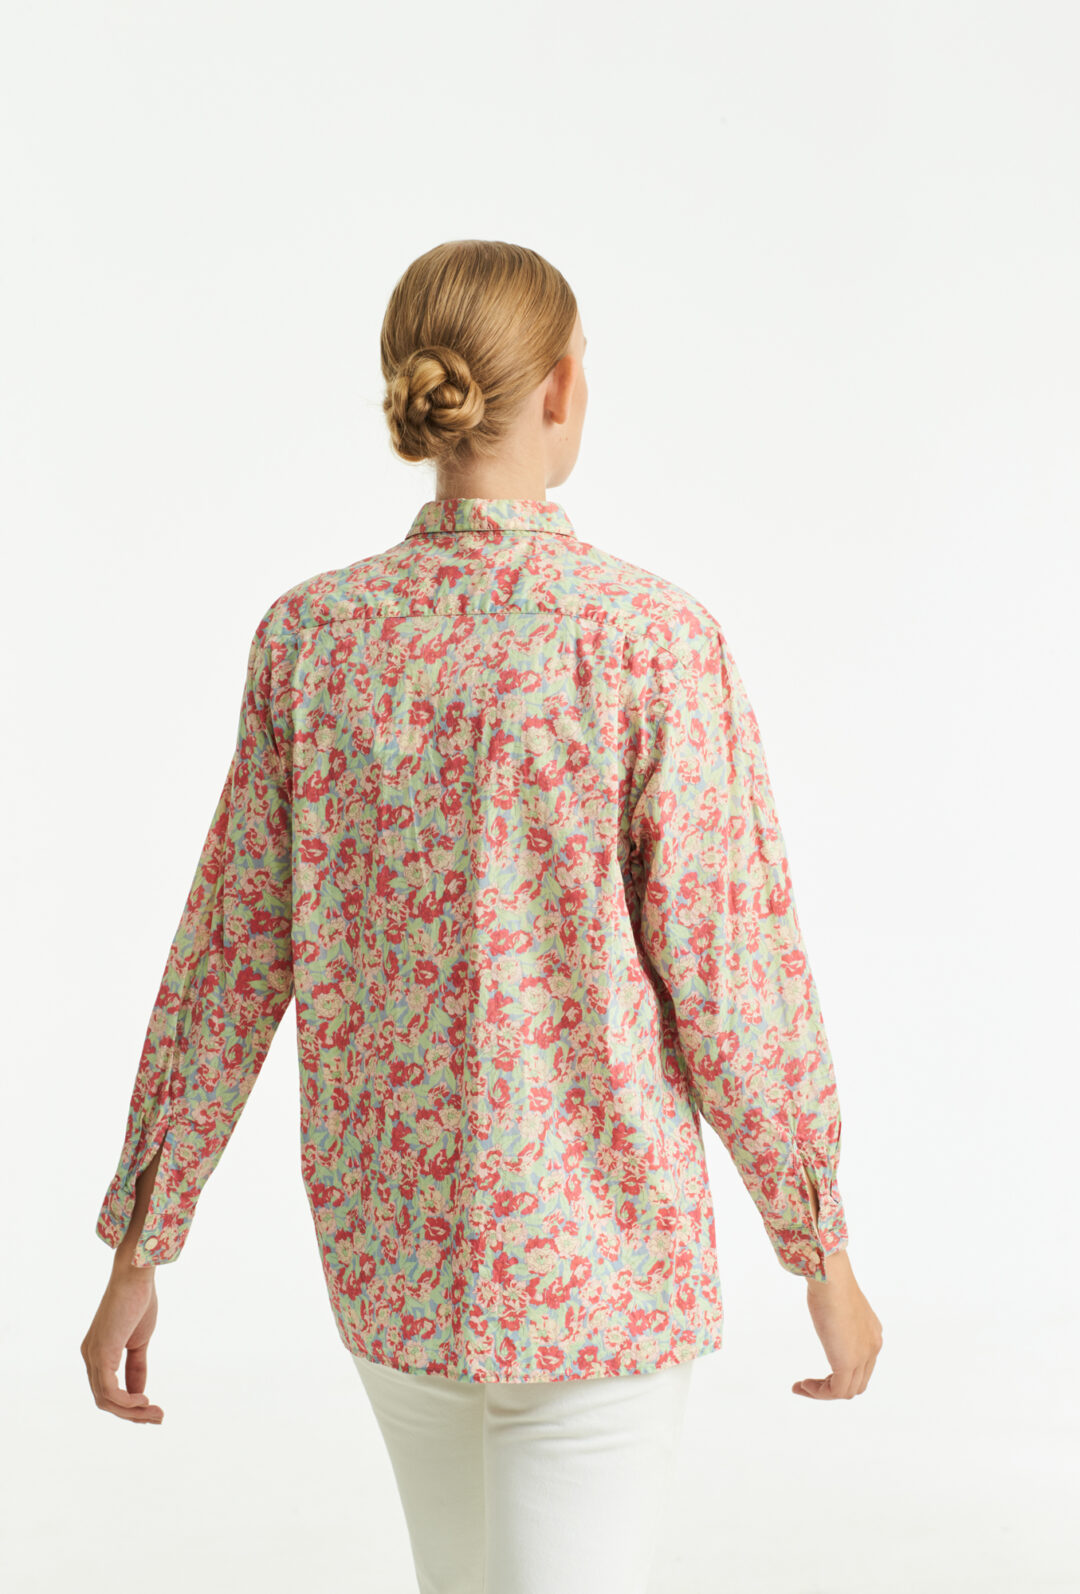 Floral printet vintage soft cotton shirt from Cacharel.